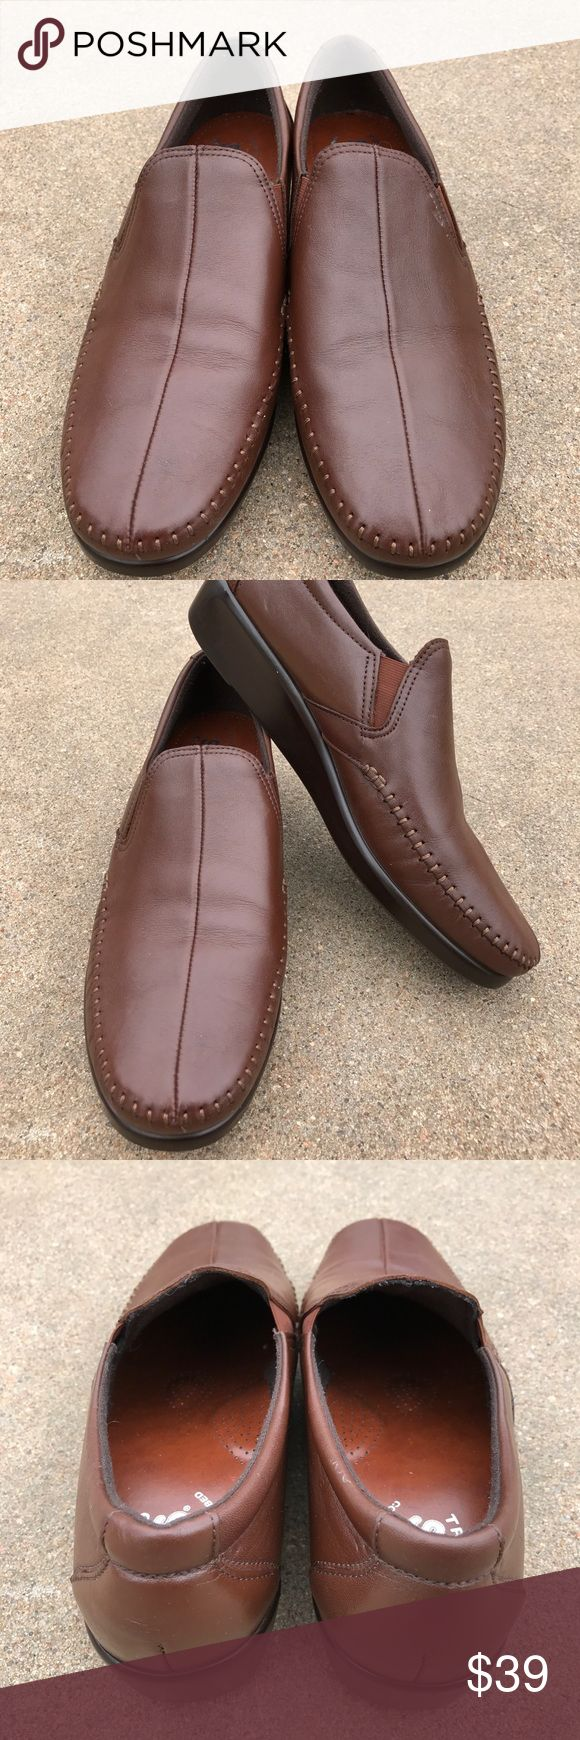 SAS Tripad Women's Mules Slip On Brown Leather Lovely SAS Tripad women's shoes mules brown leather comfort foot bed loafer slip on loafer. Size 10M. Condition. Pre-owned, normal wear, in good condition. SAS Tripad Shoes Flats & Loafers